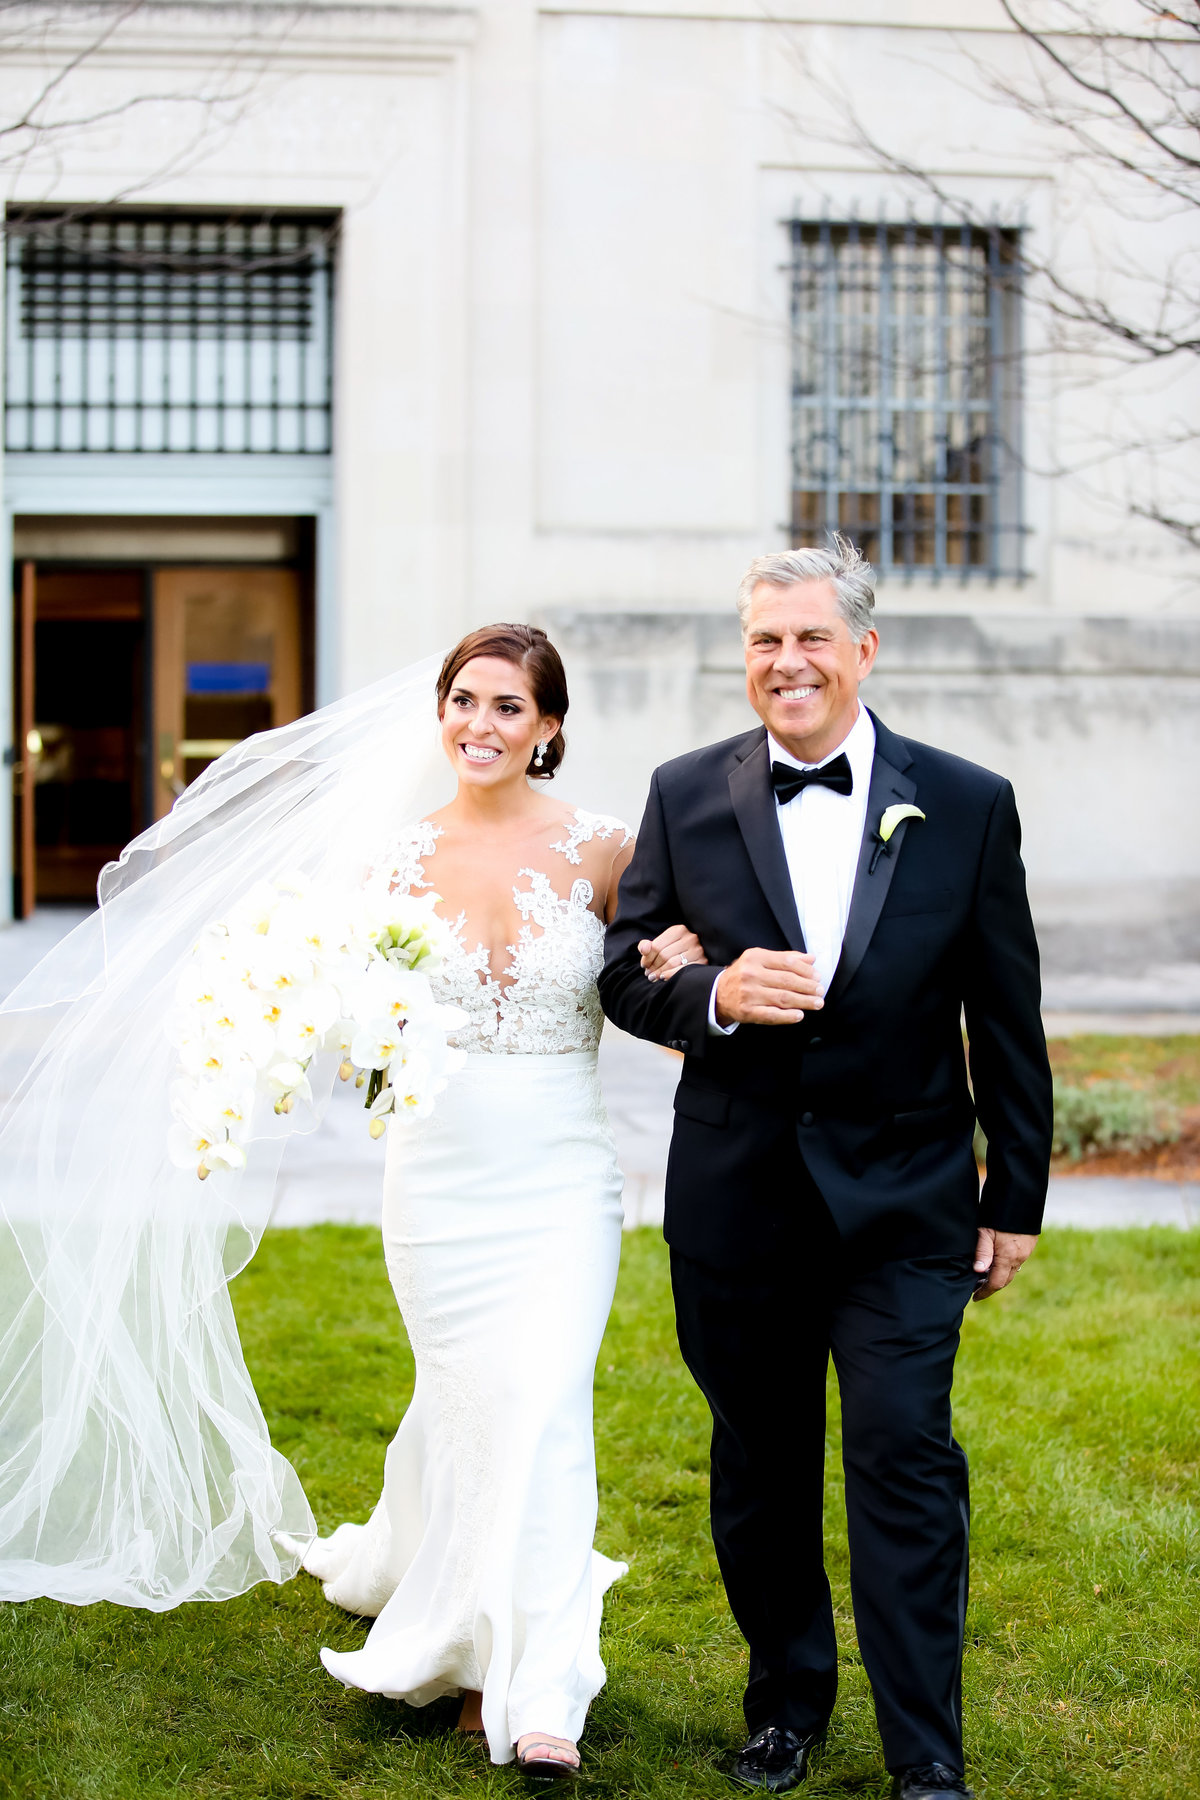 Indianapolis Wedding Photographer | Sara Ackermann Photography-29